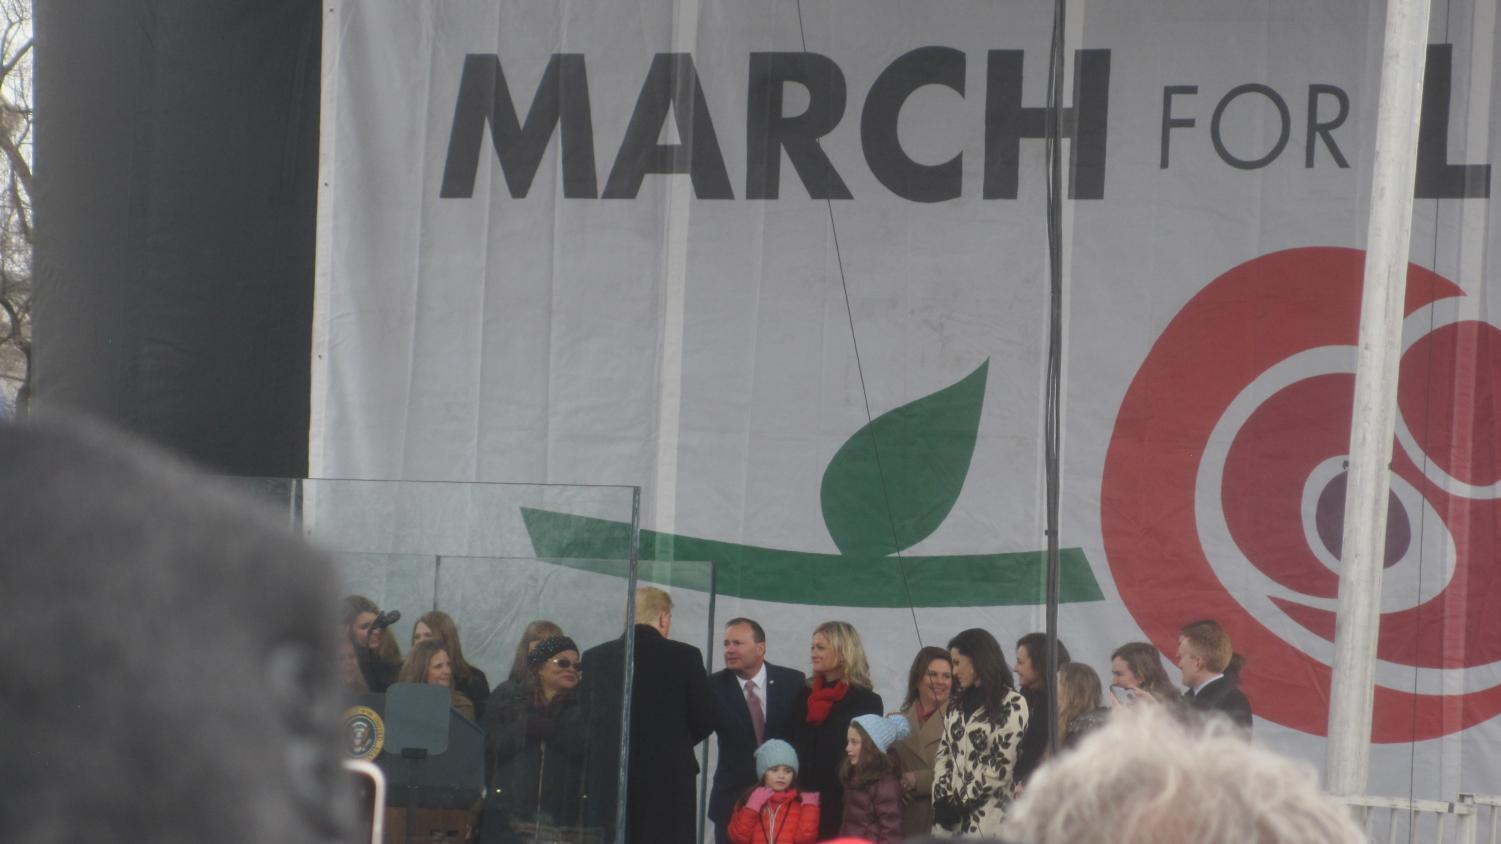 President Trump is the first US president to address the March for Life in person in Washington, D.C.